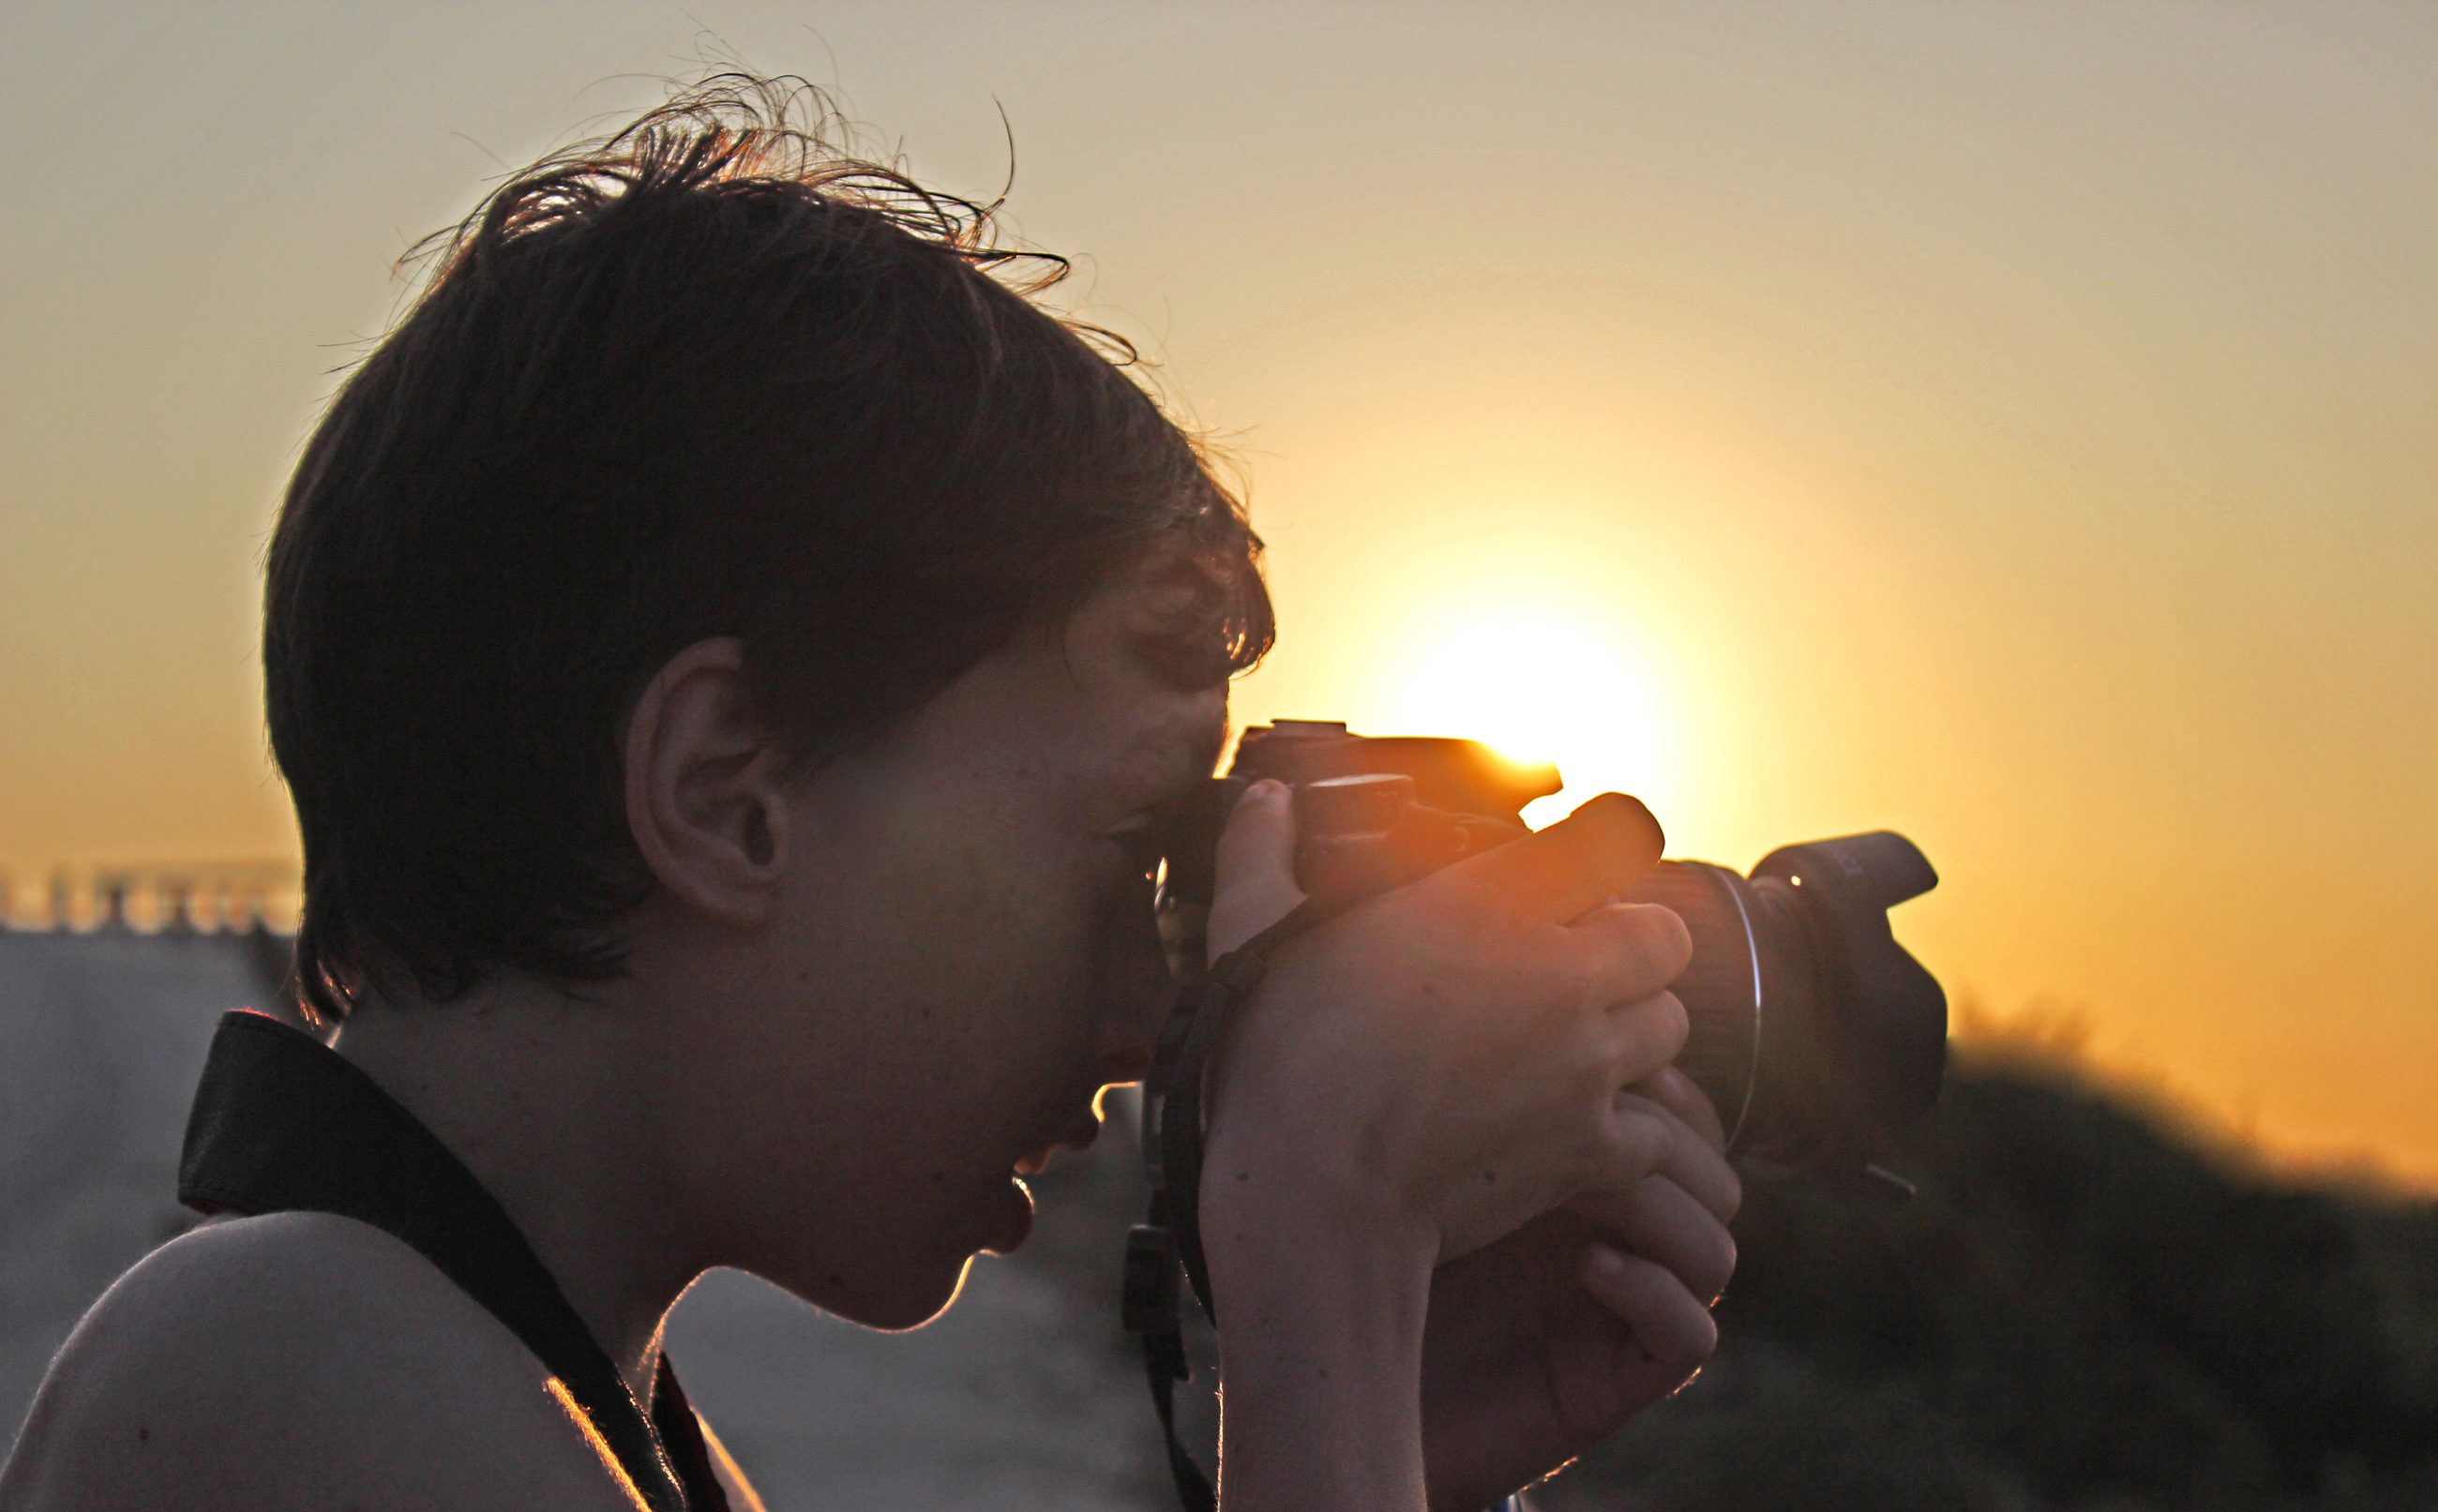 Child taking a picture with DSLR camera, Amateur, Lowlight, Vacations, Taking, HQ Photo